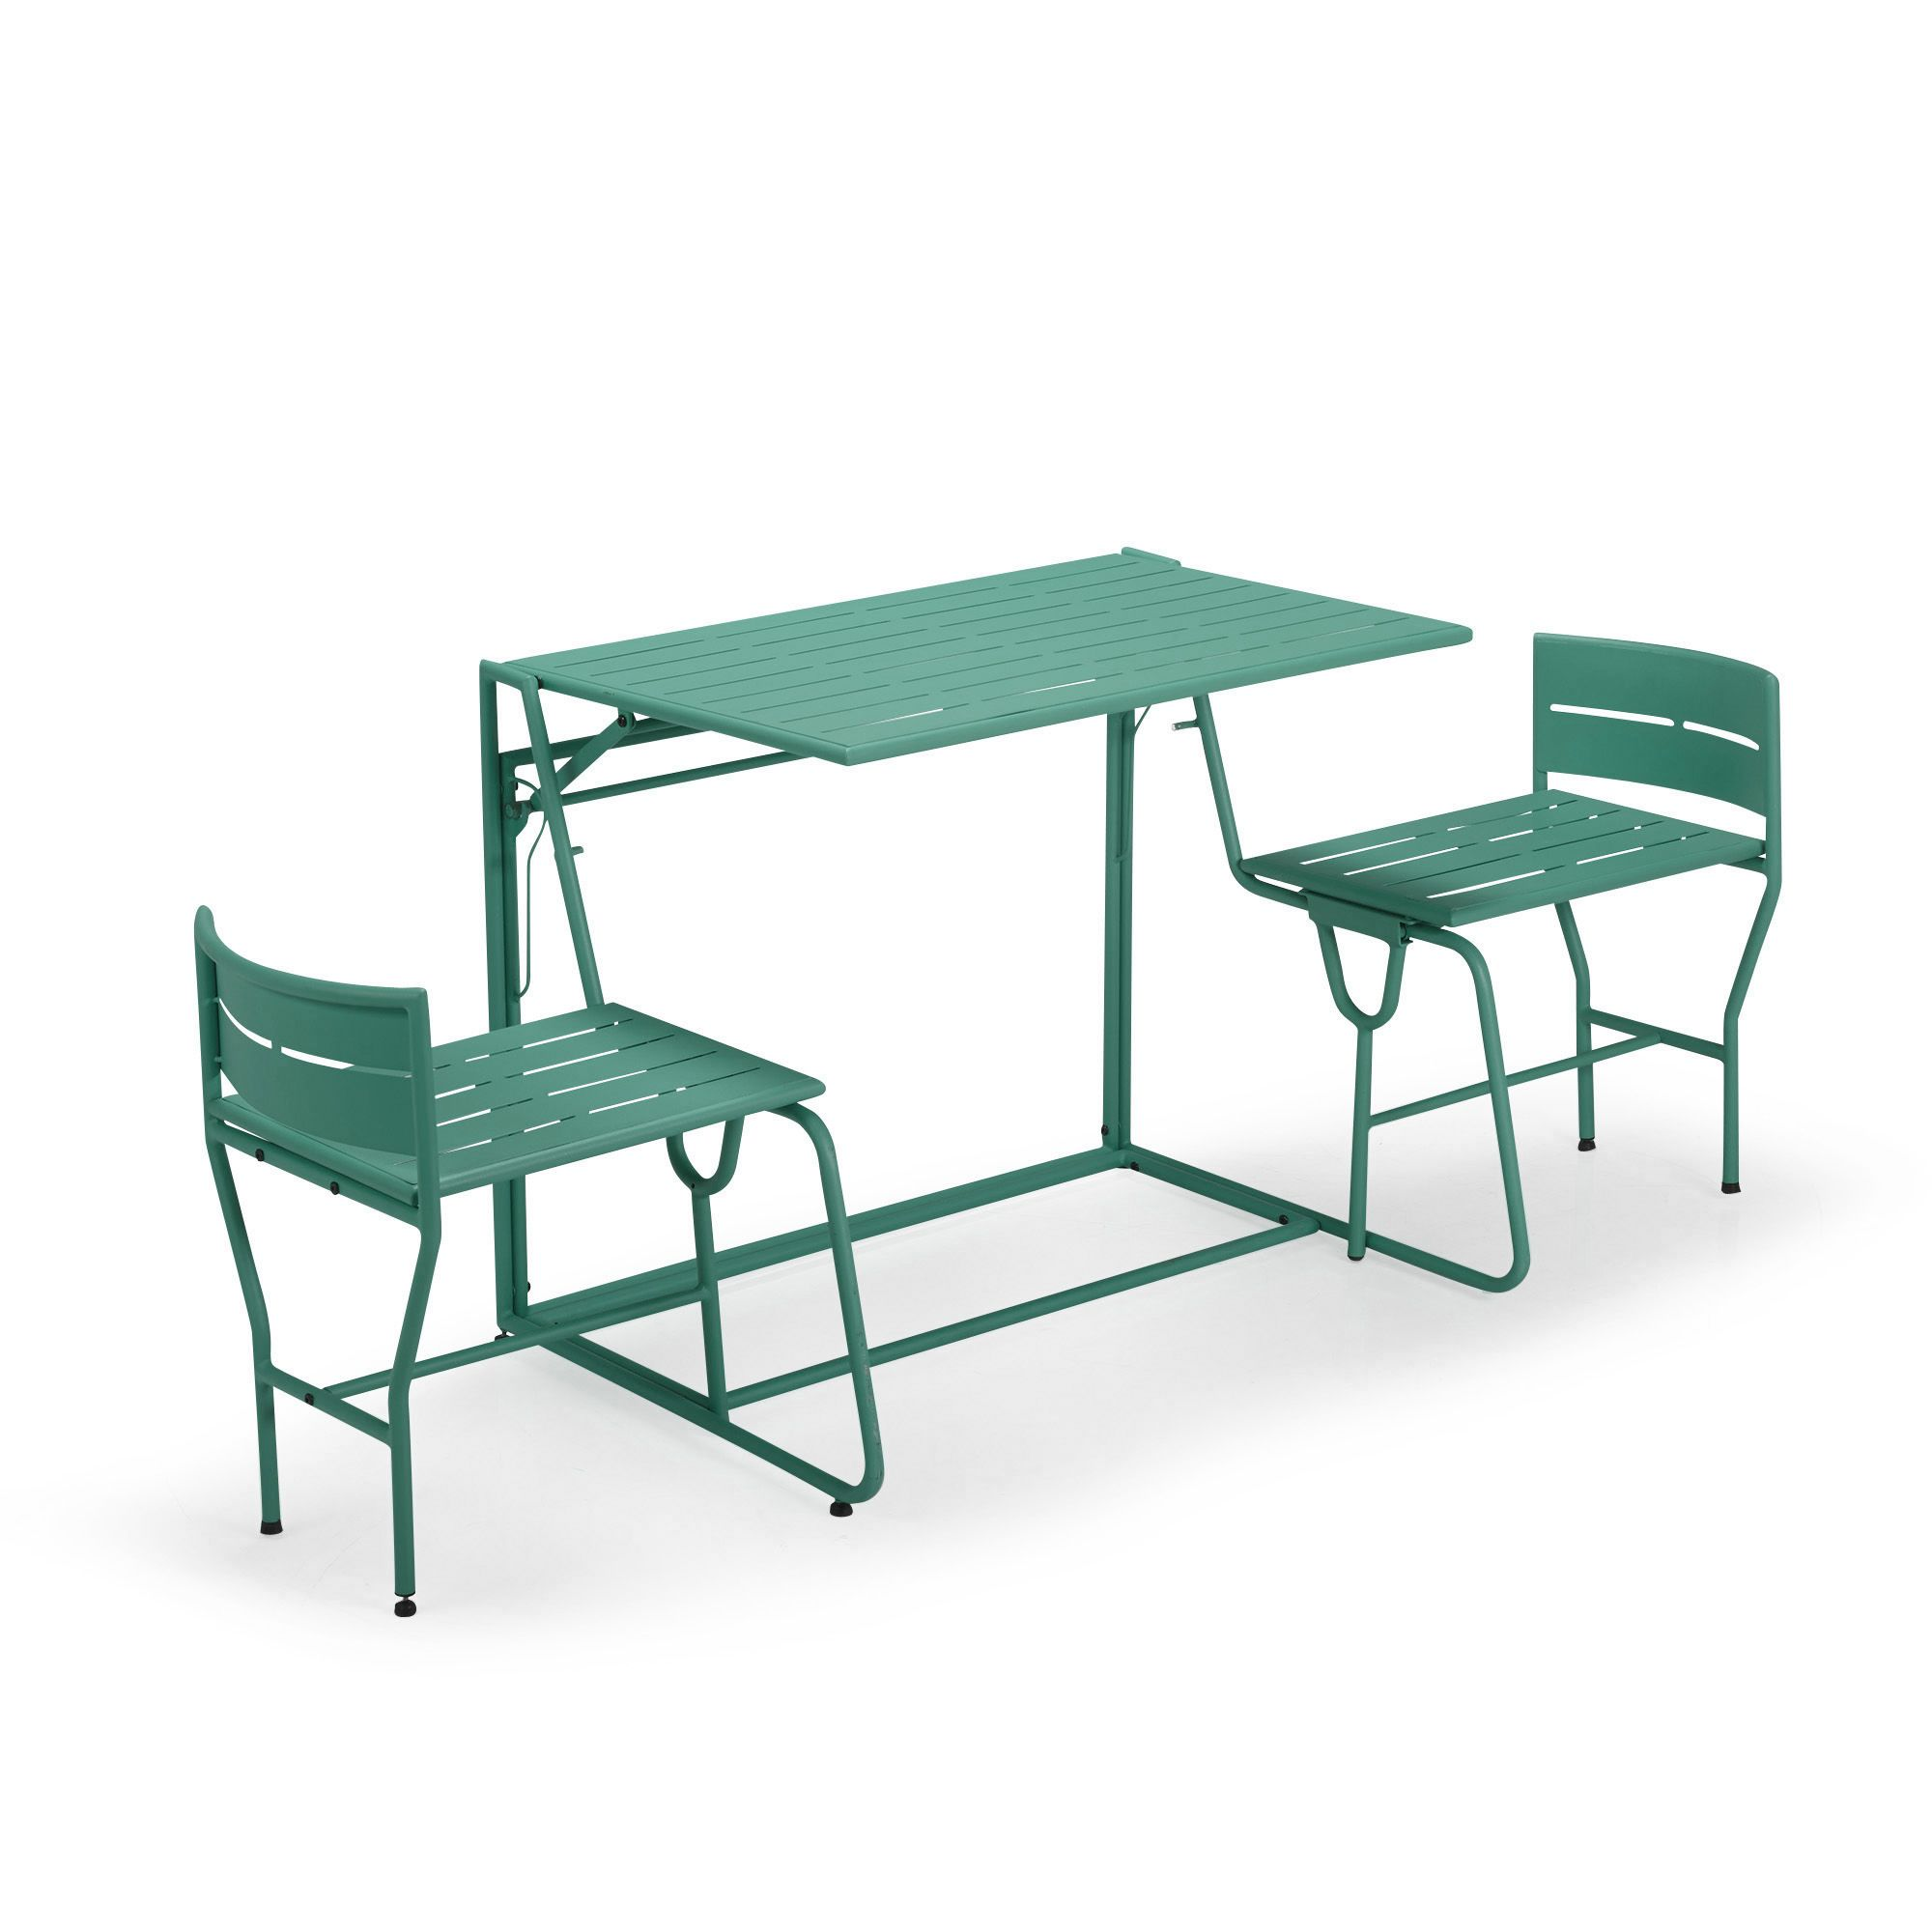 Picnic le salon de jardin balcon transformable 2 en 1 for Les salons de jardin